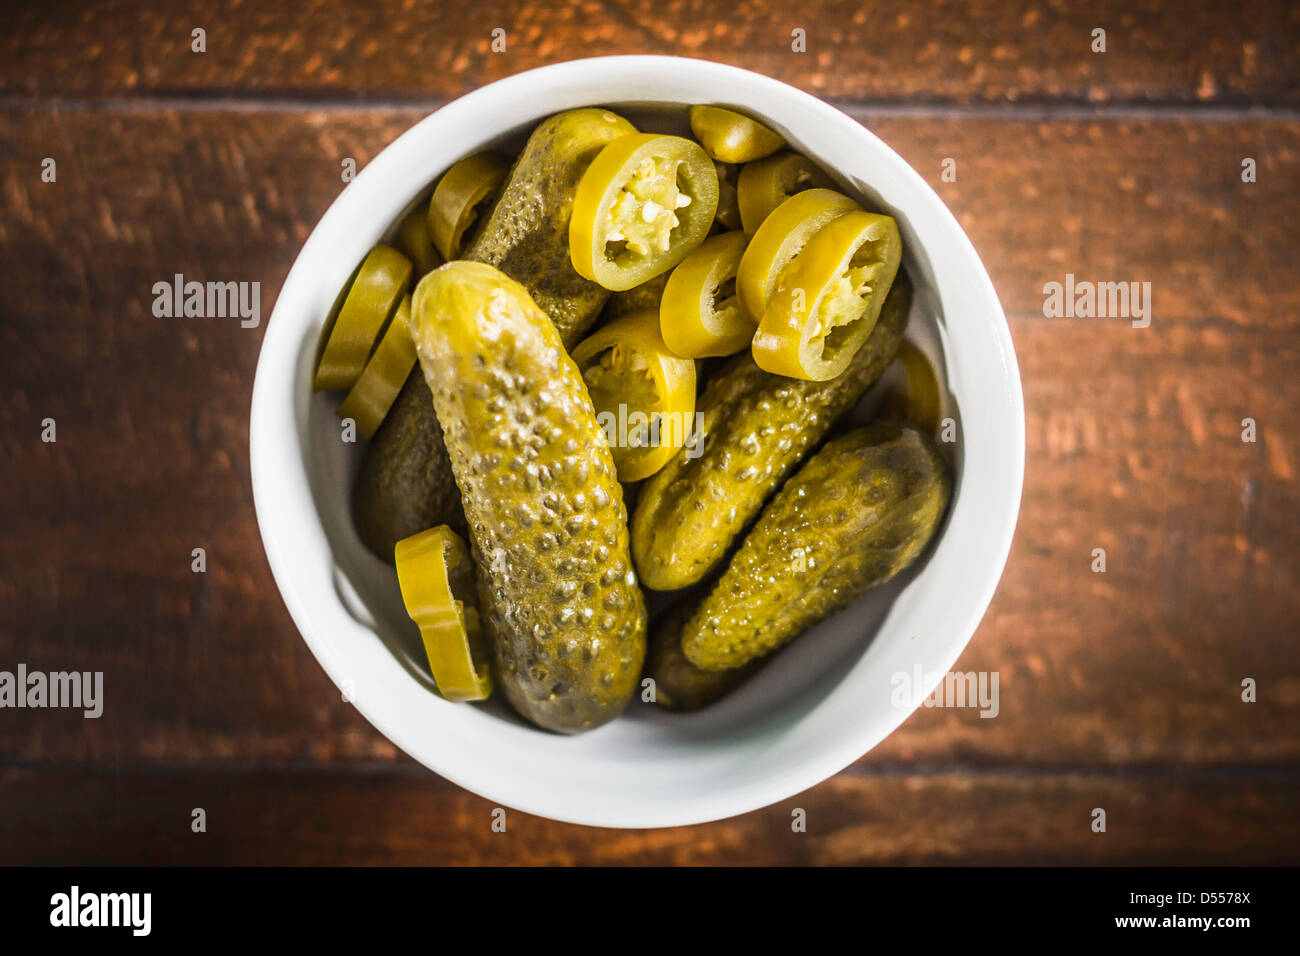 Bowl of pickles and chili pepper slices - Stock Image